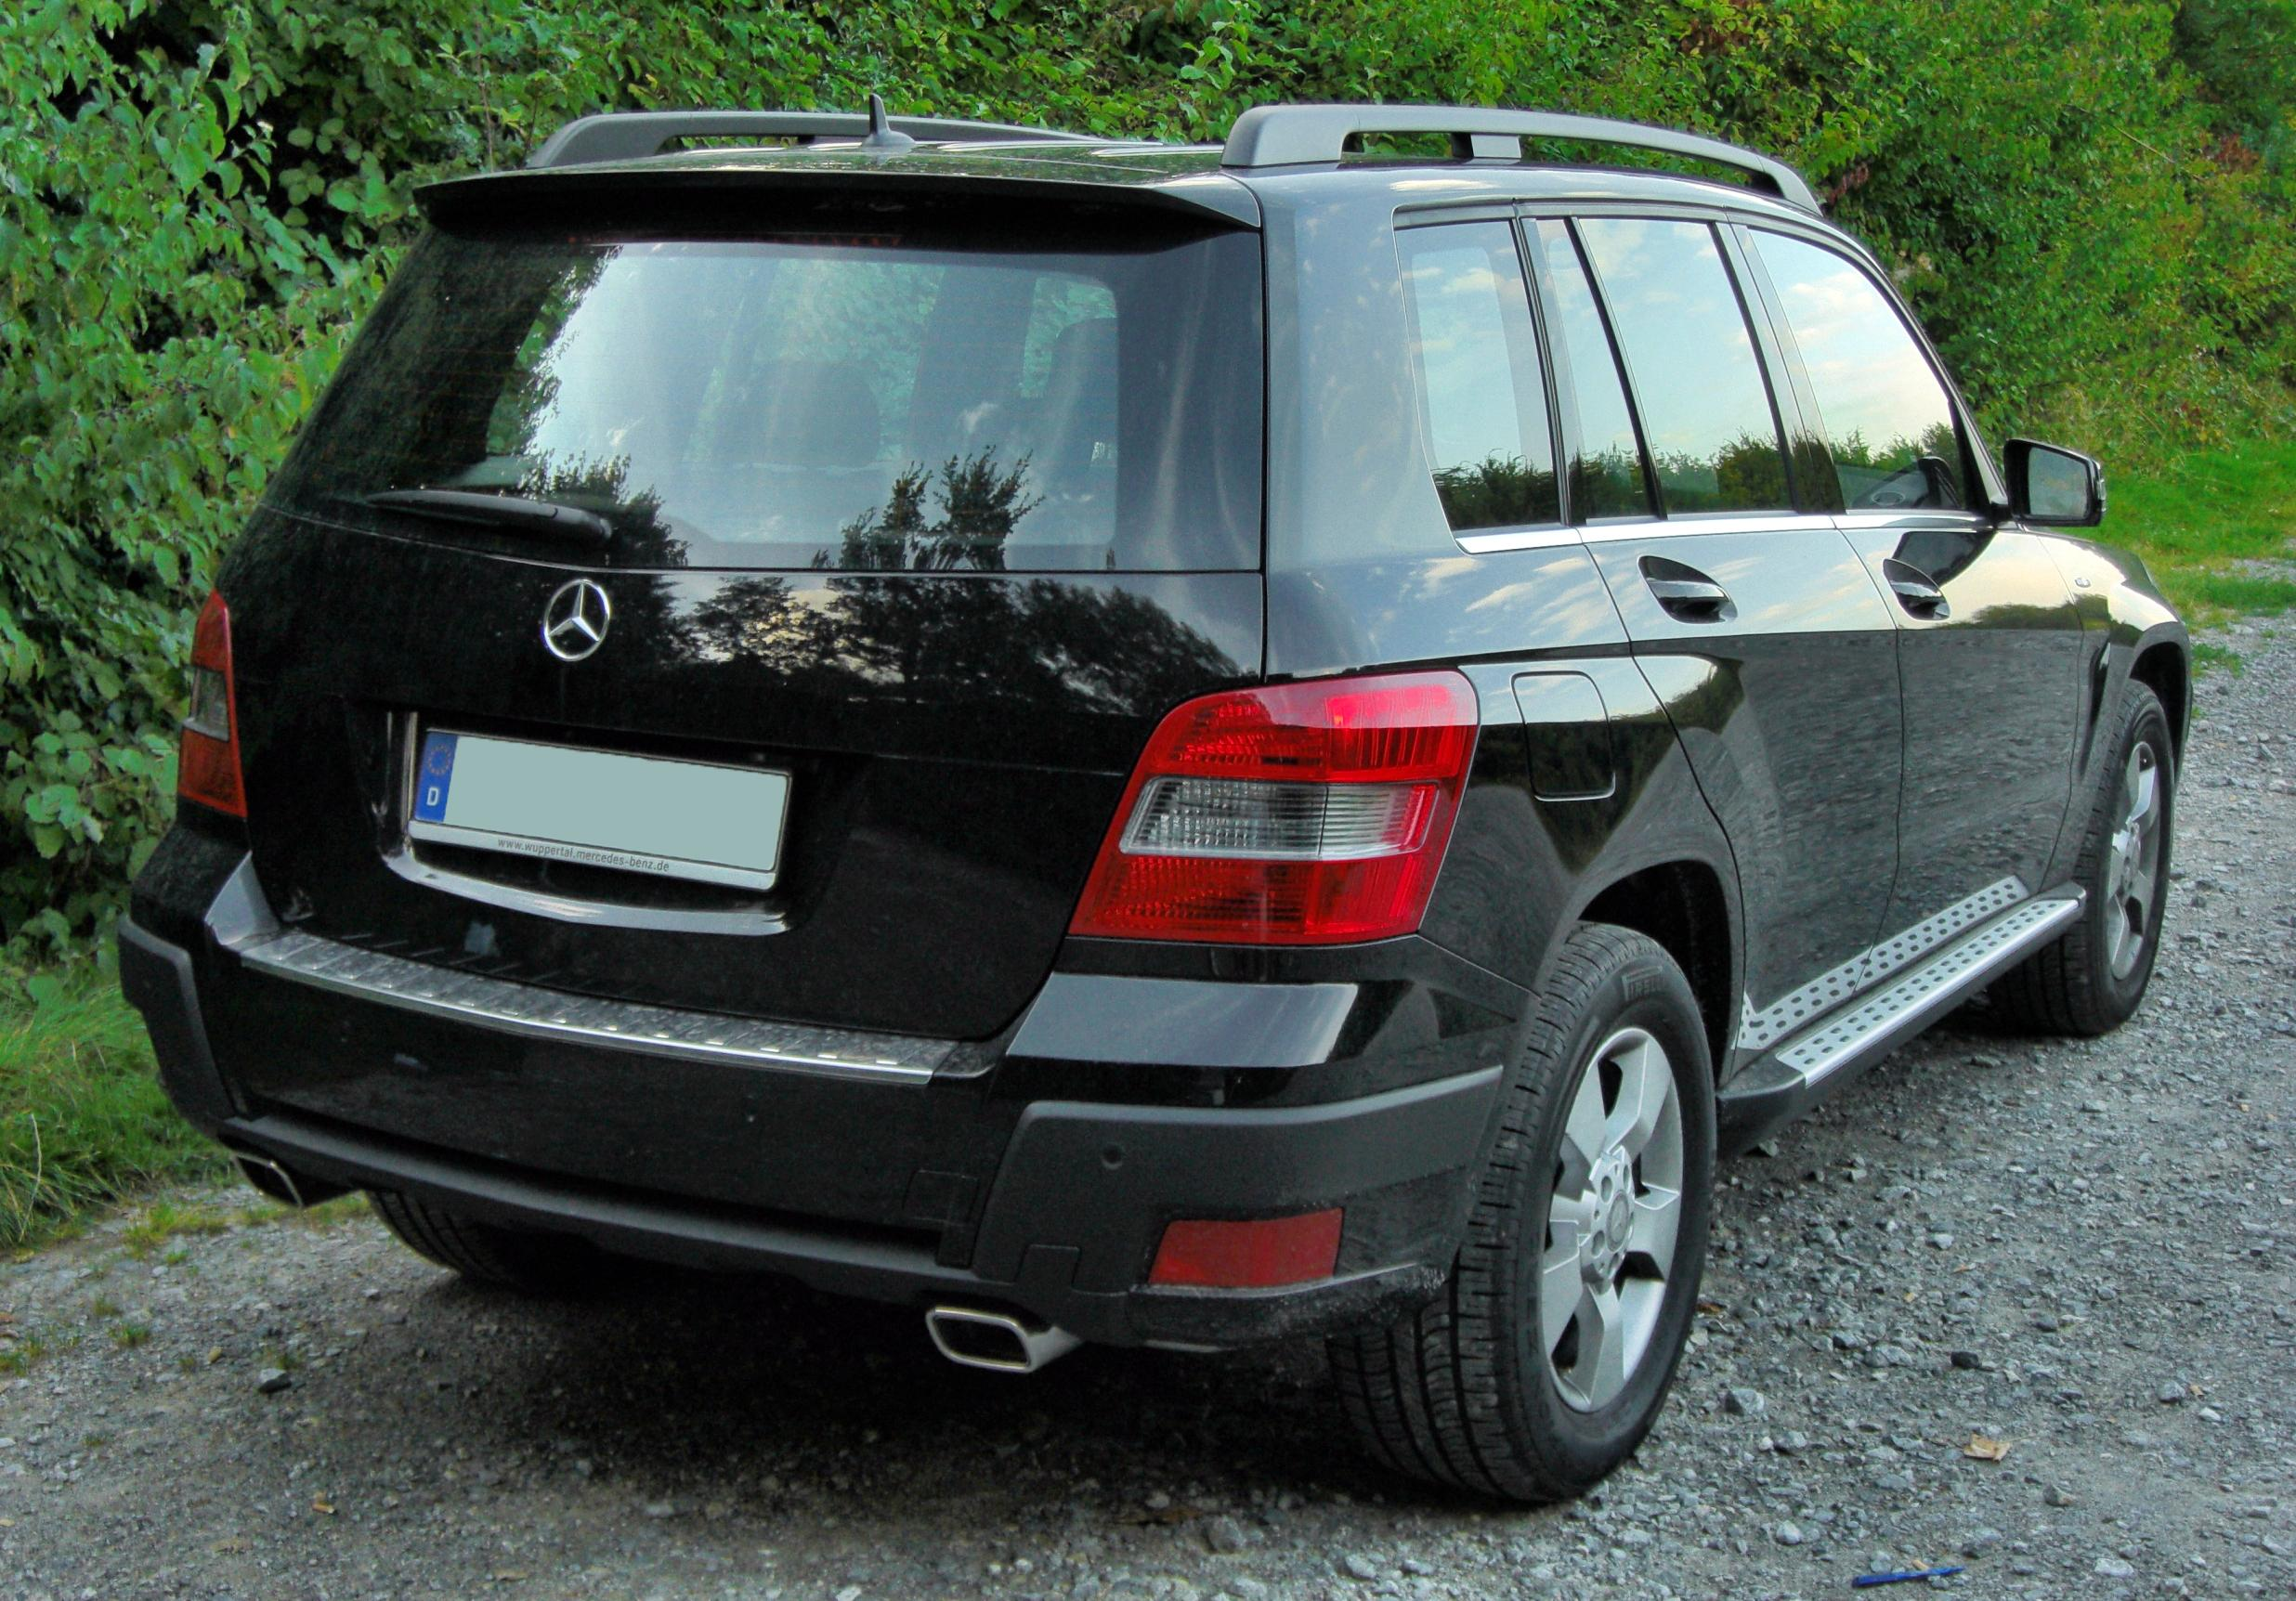 file mercedes glk 220 cdi blueefficiency 4matic offroad paket 20090821 rear jpg wikimedia commons. Black Bedroom Furniture Sets. Home Design Ideas